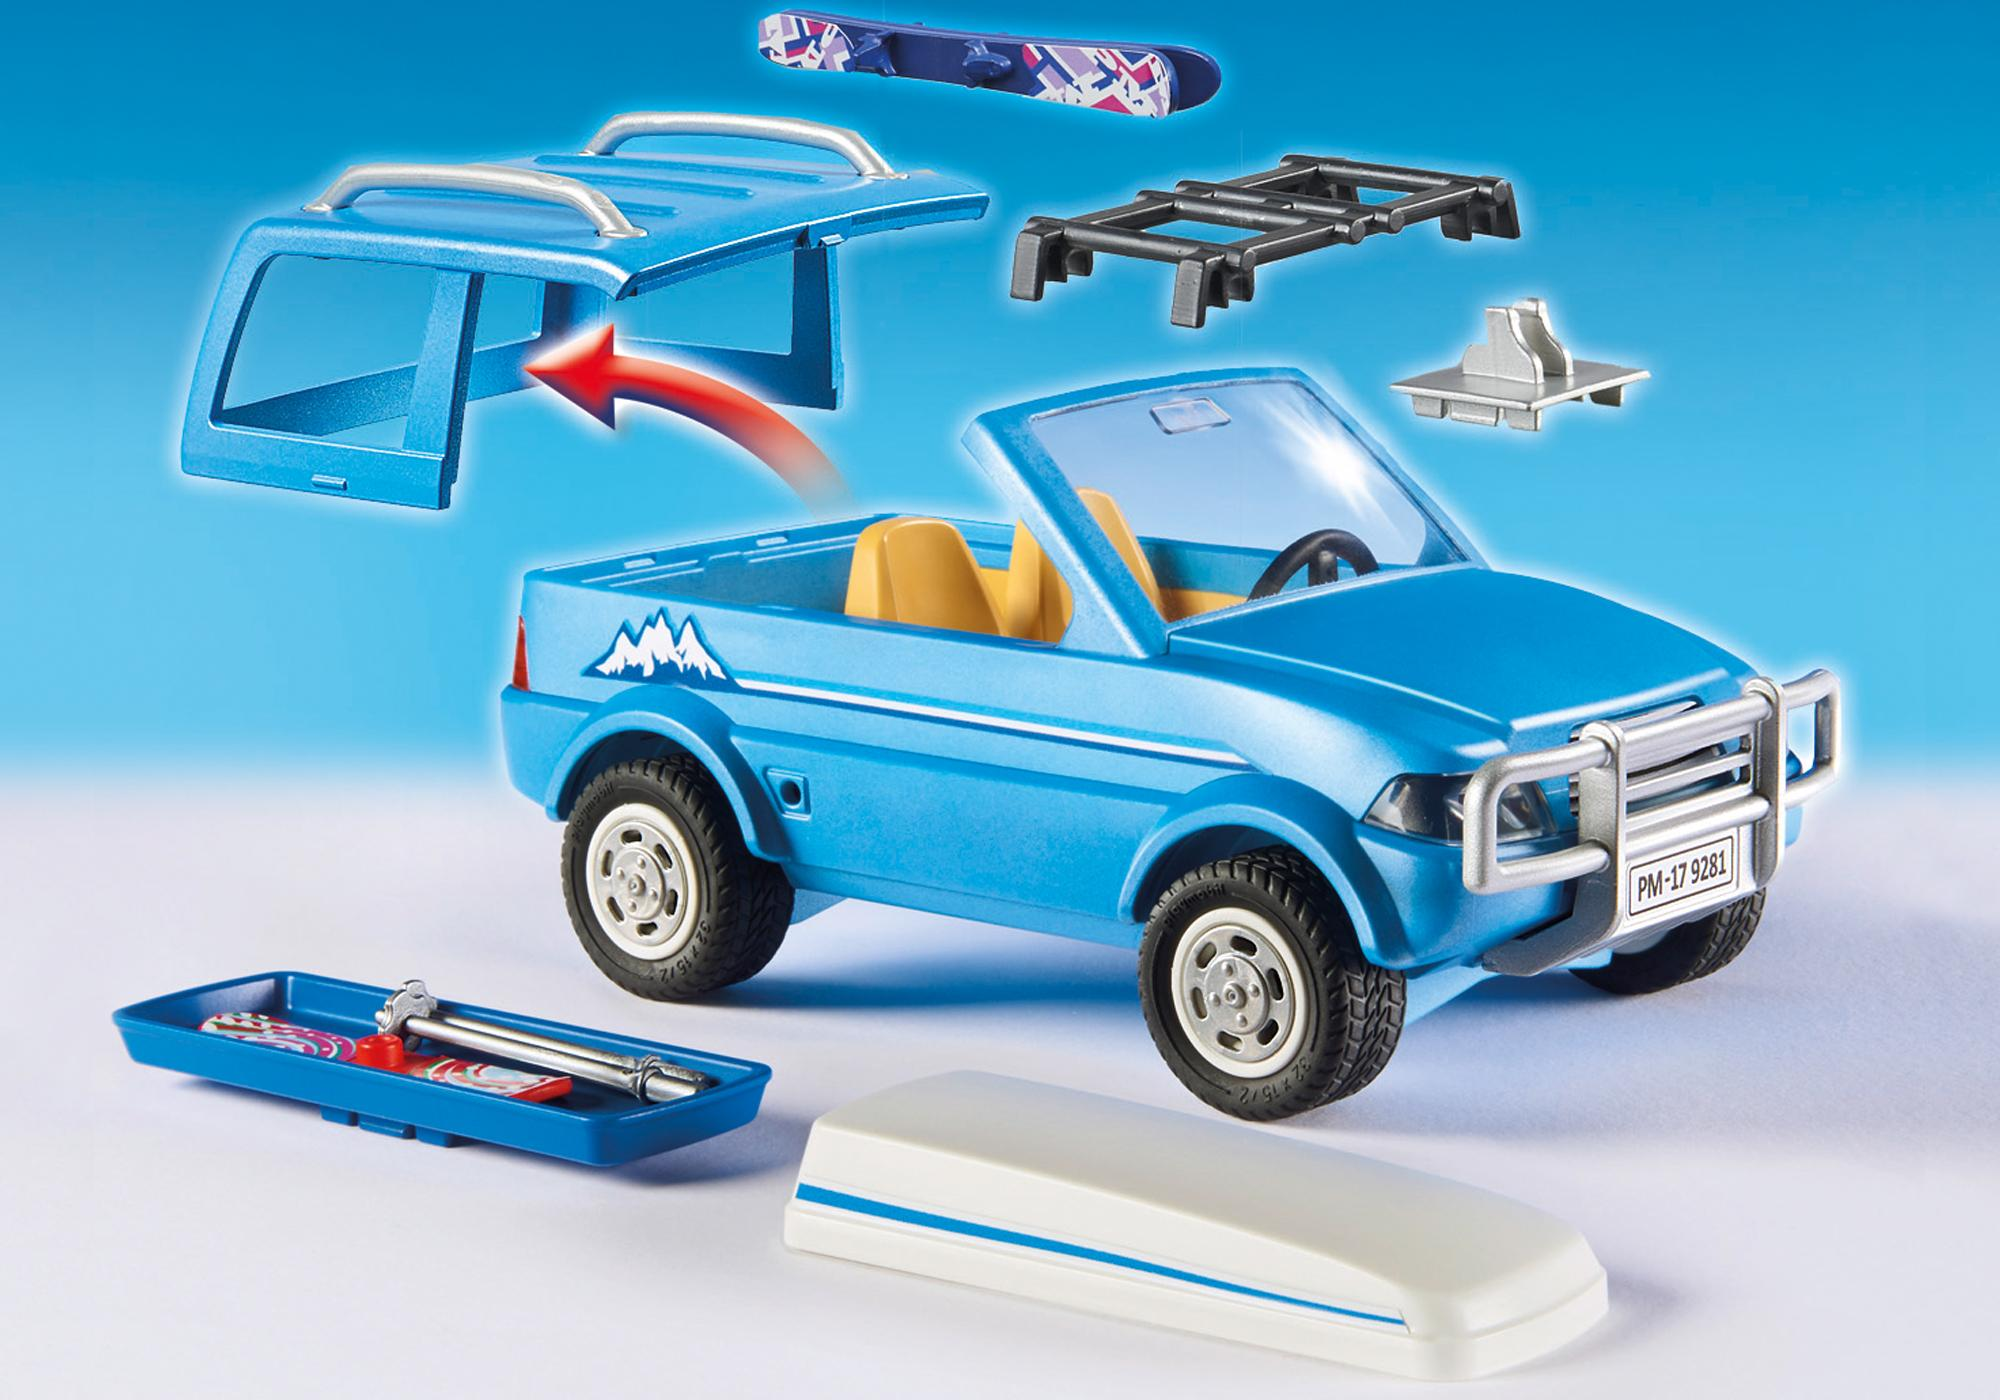 http://media.playmobil.com/i/playmobil/9281_product_extra3/Auto mit Dachbox